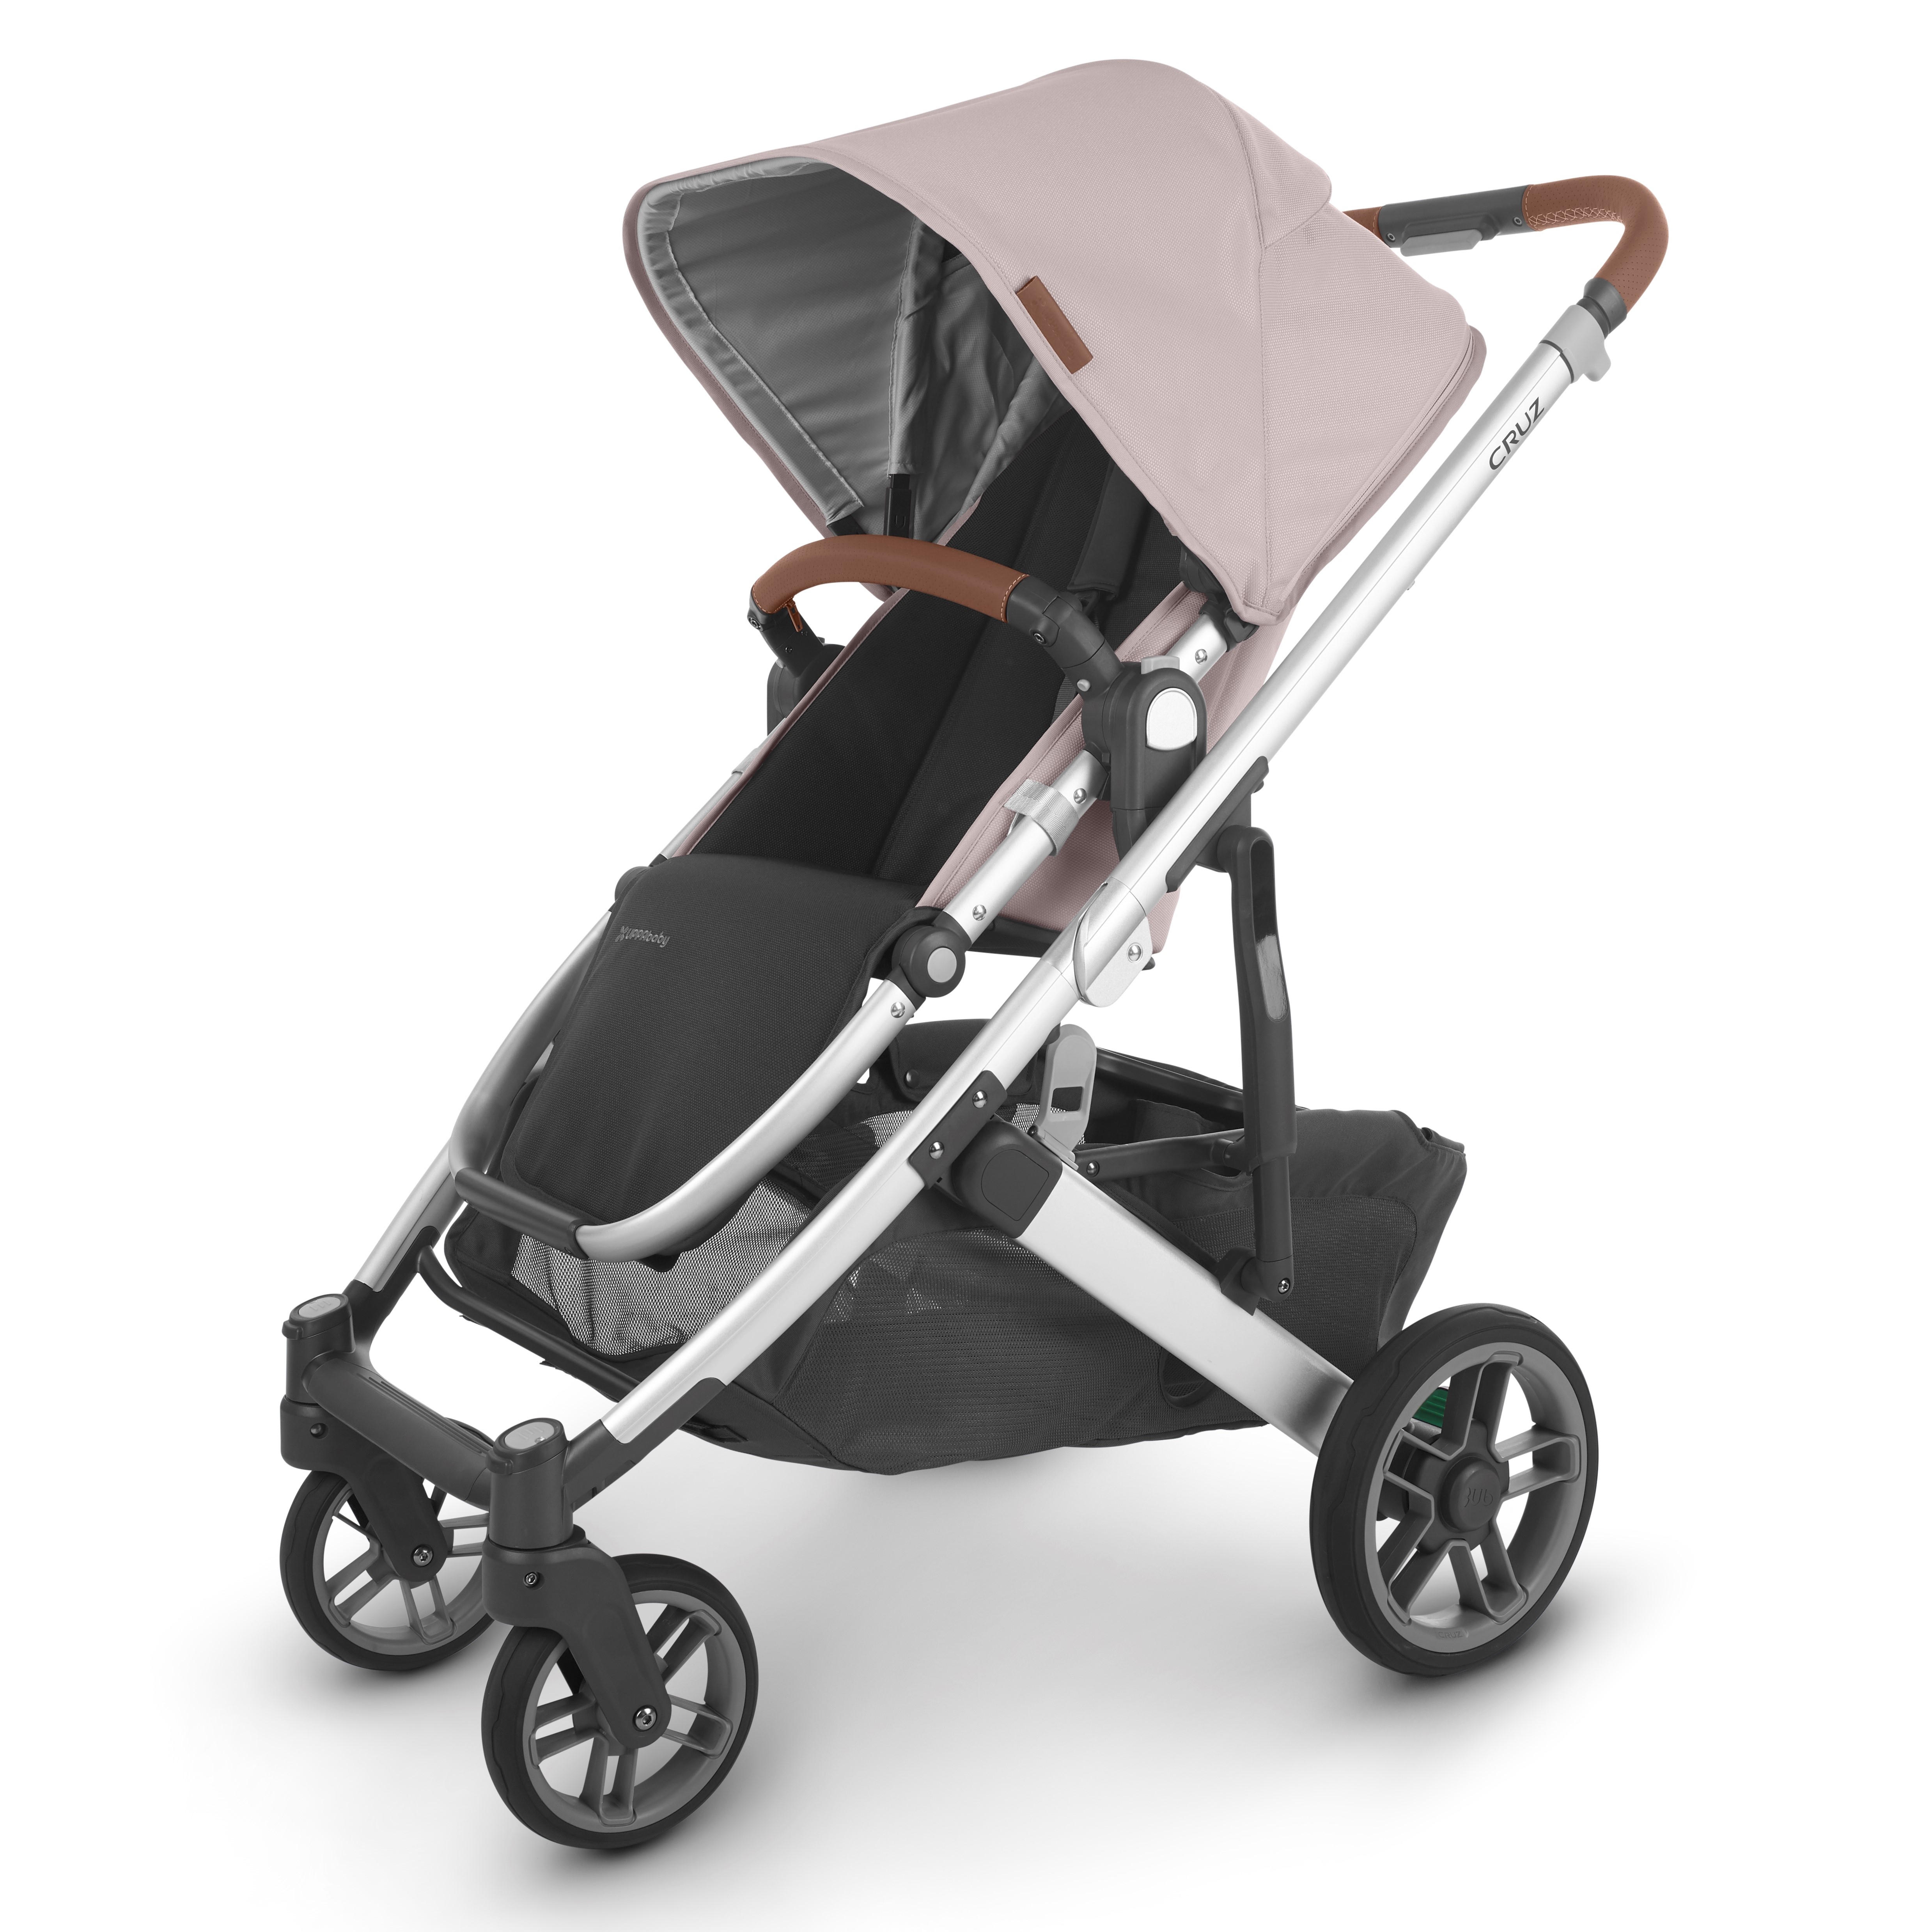 2020 UPPAbaby Cruz V2 Stroller - Alice (Dusty Pink/Silver/Saddle Leather)